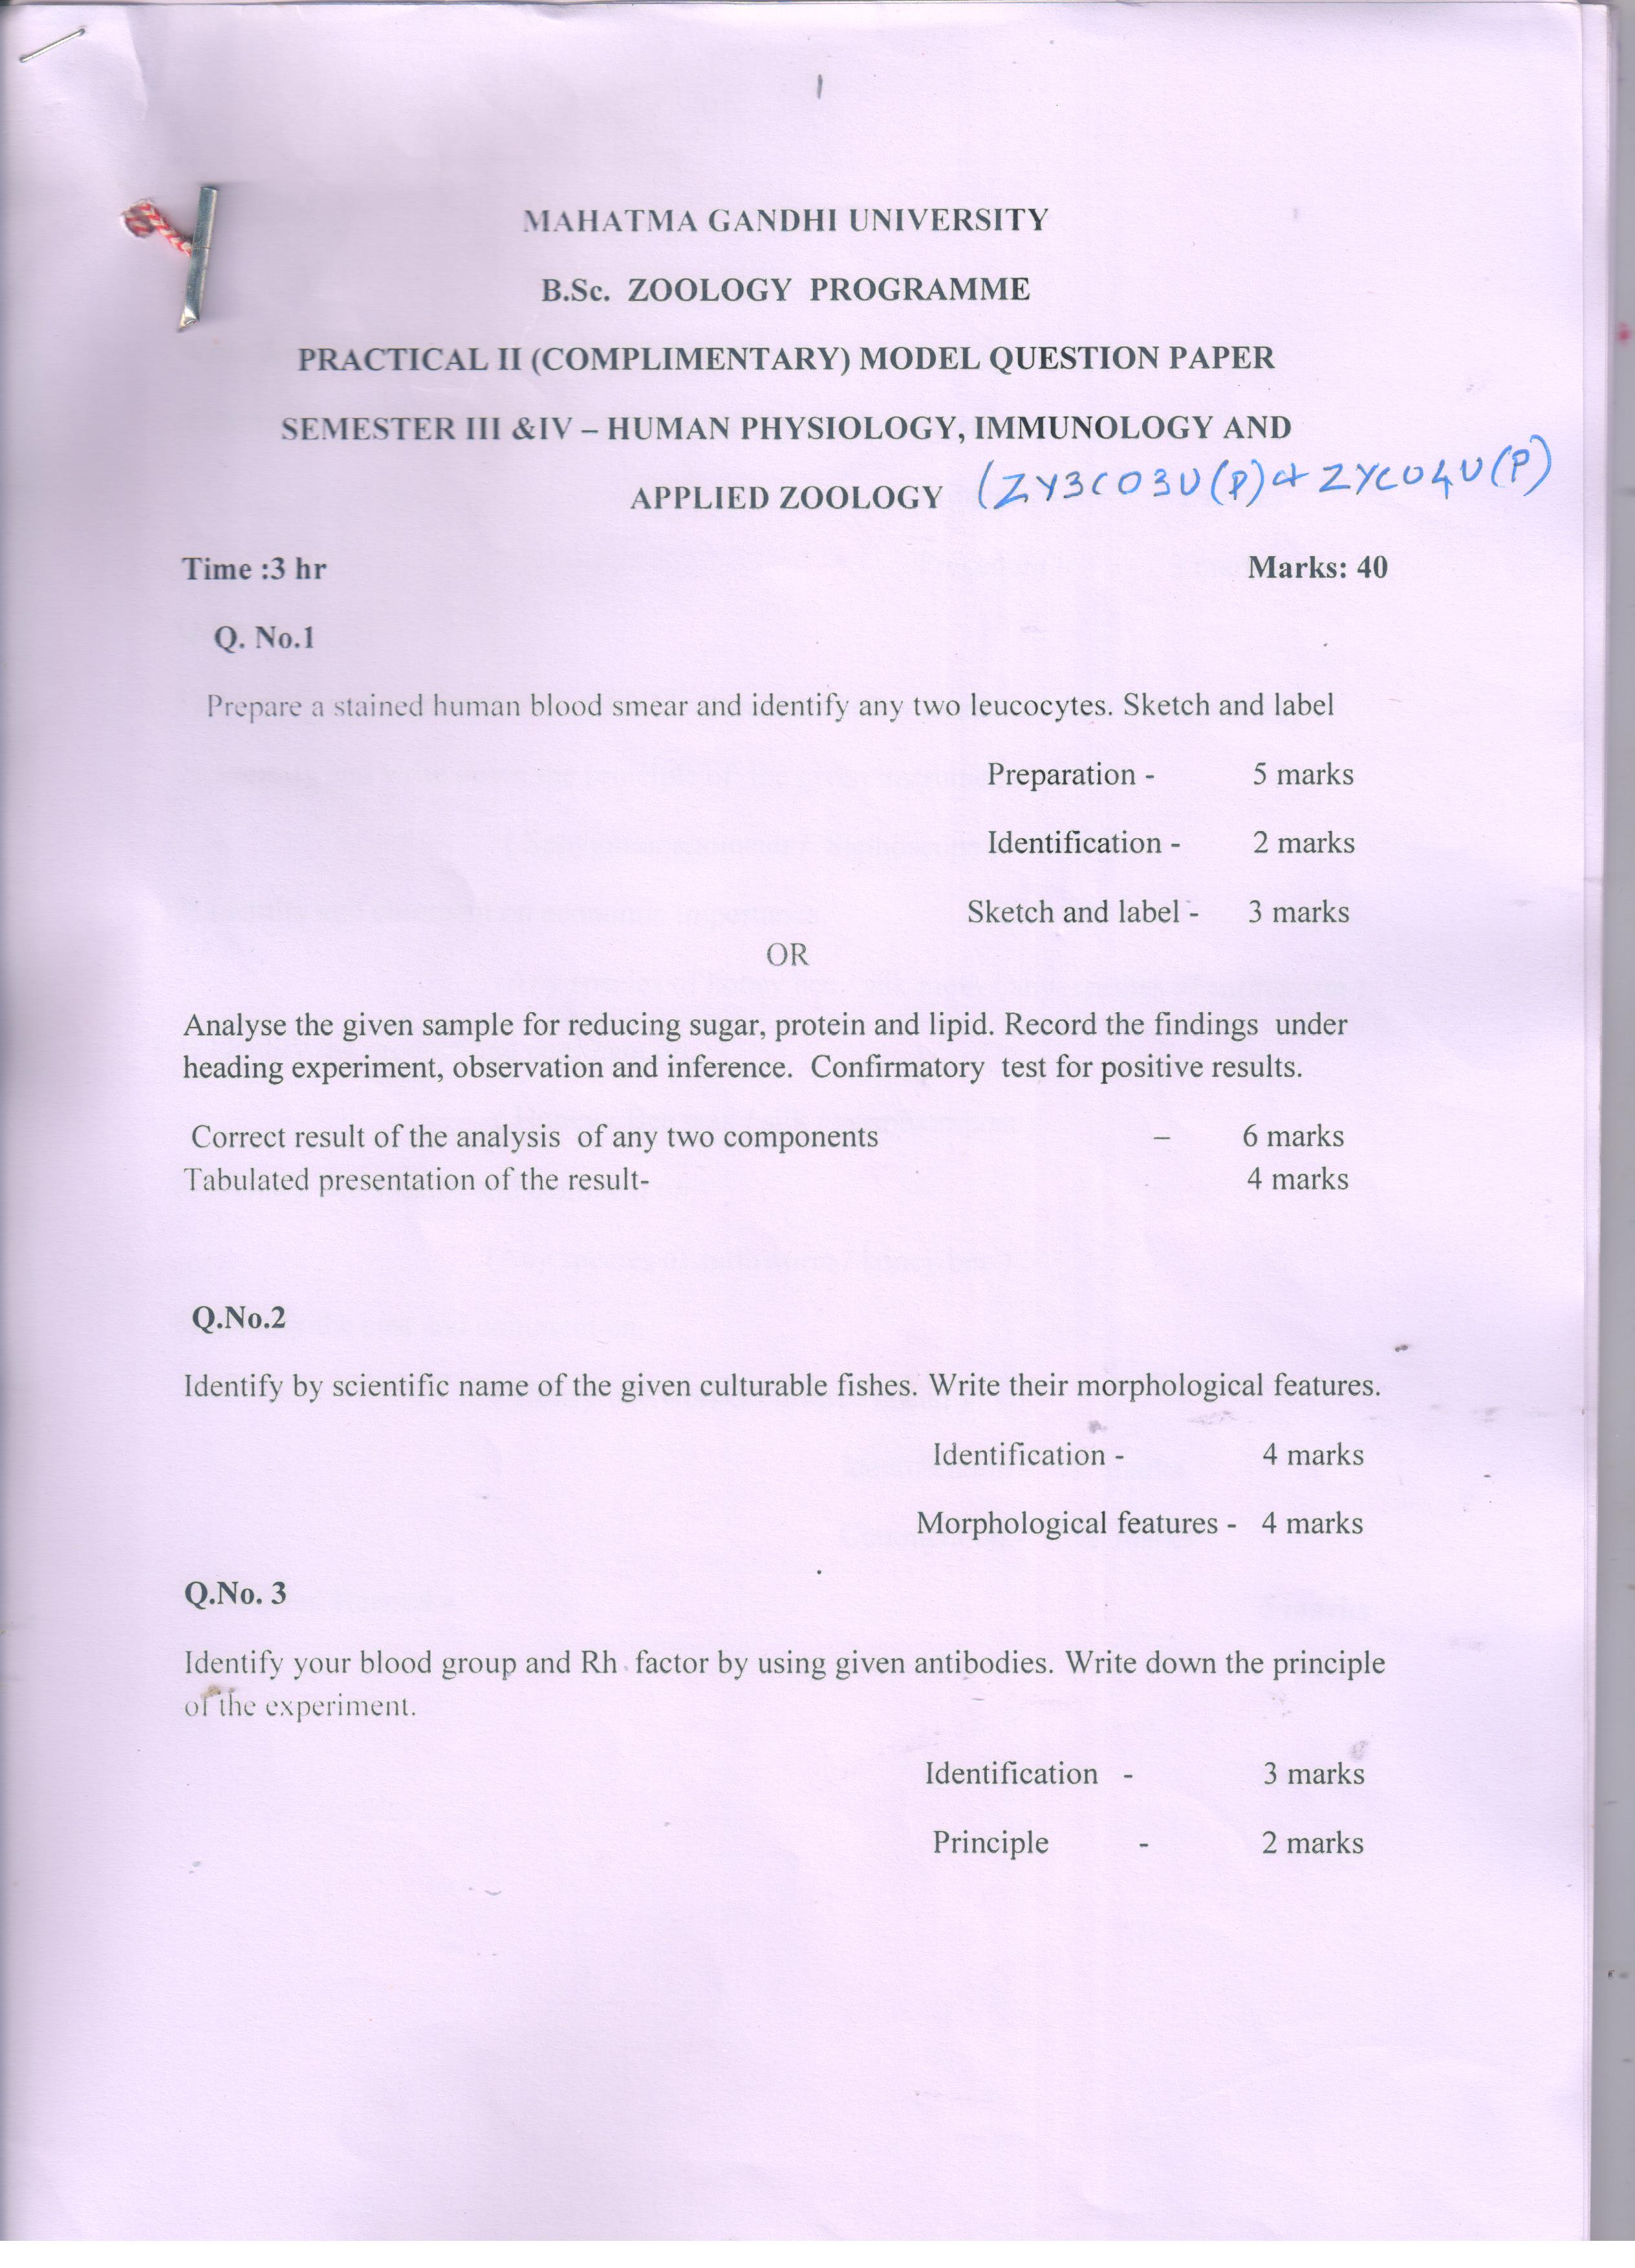 Model Question Papers - MG University : MG University